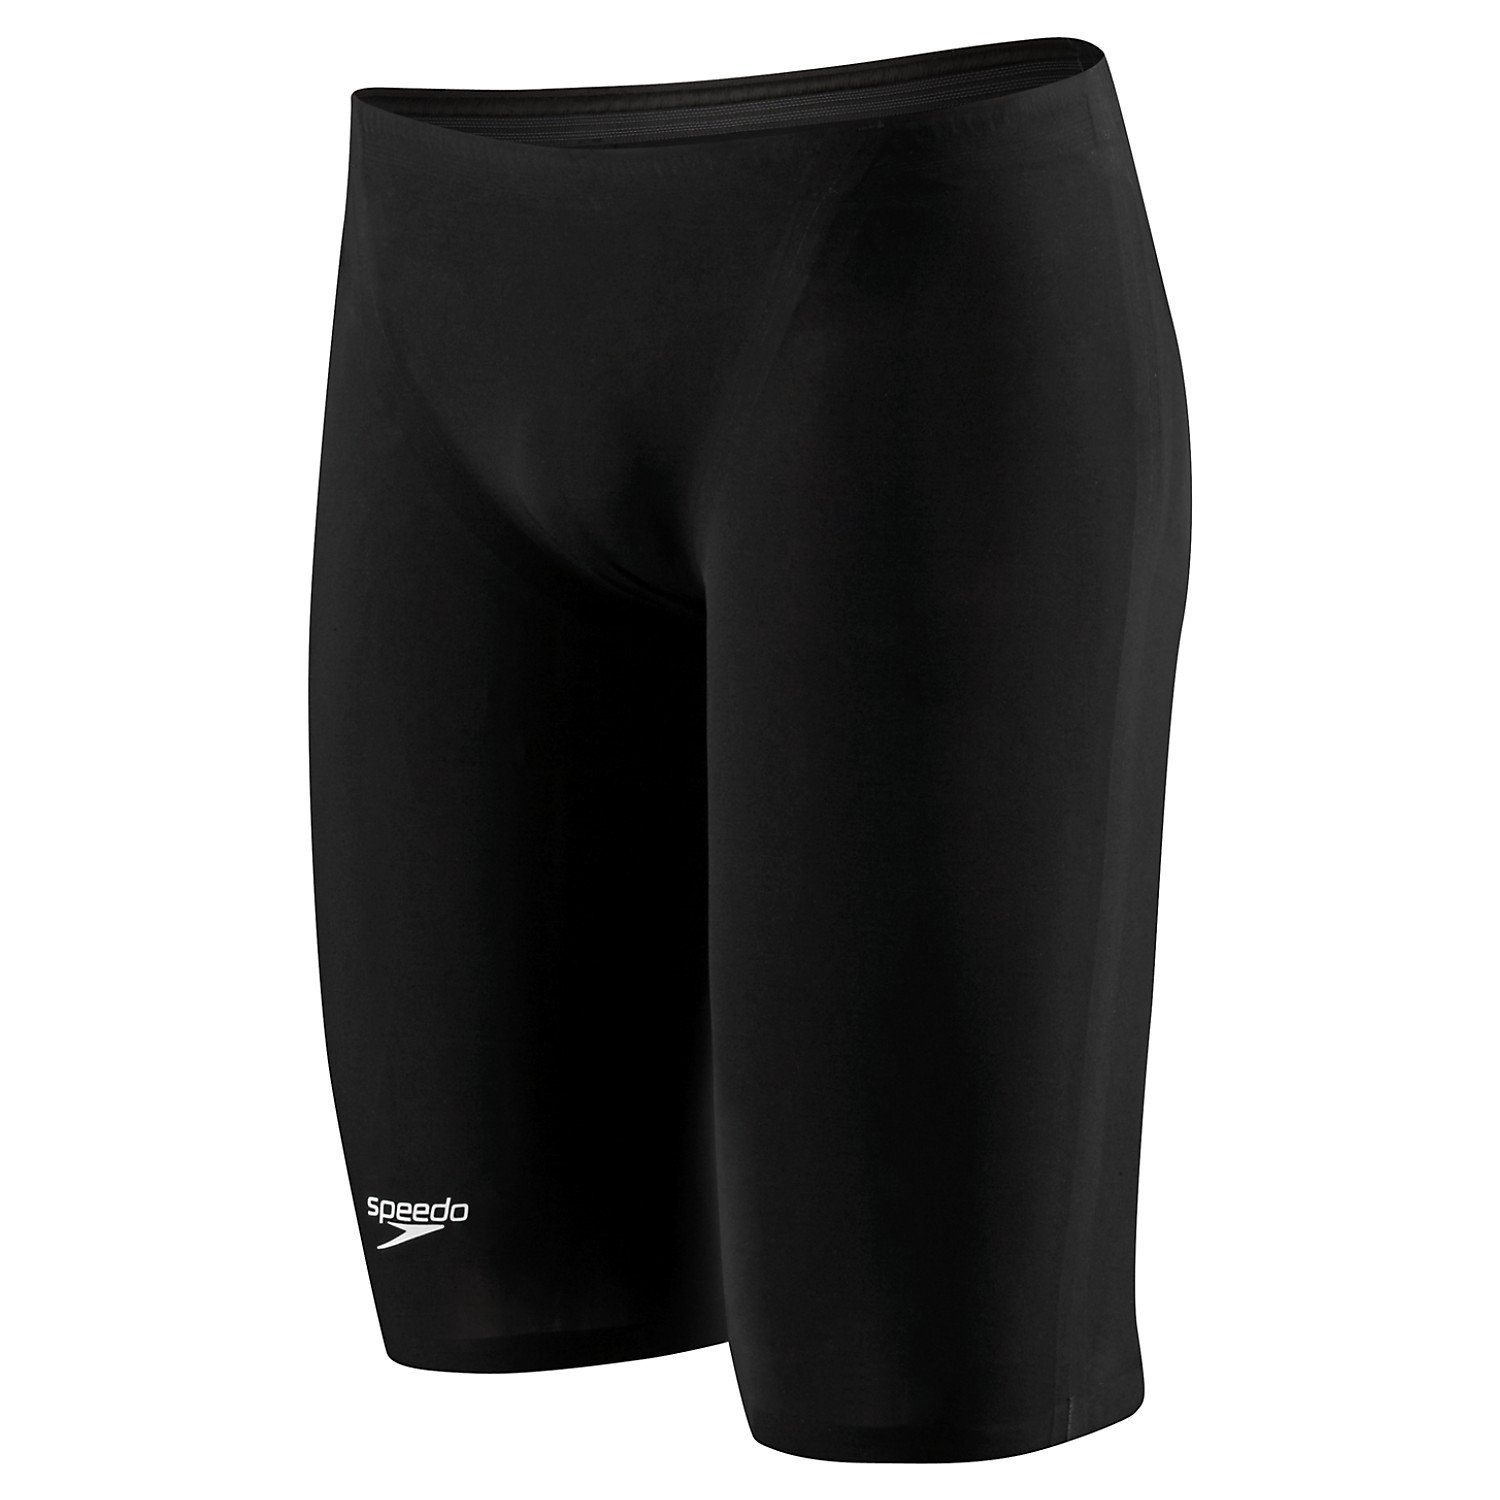 Speedo Men's LZR Racer Elite 2 High Waist Jammer - 26 - Black/Hot Pink